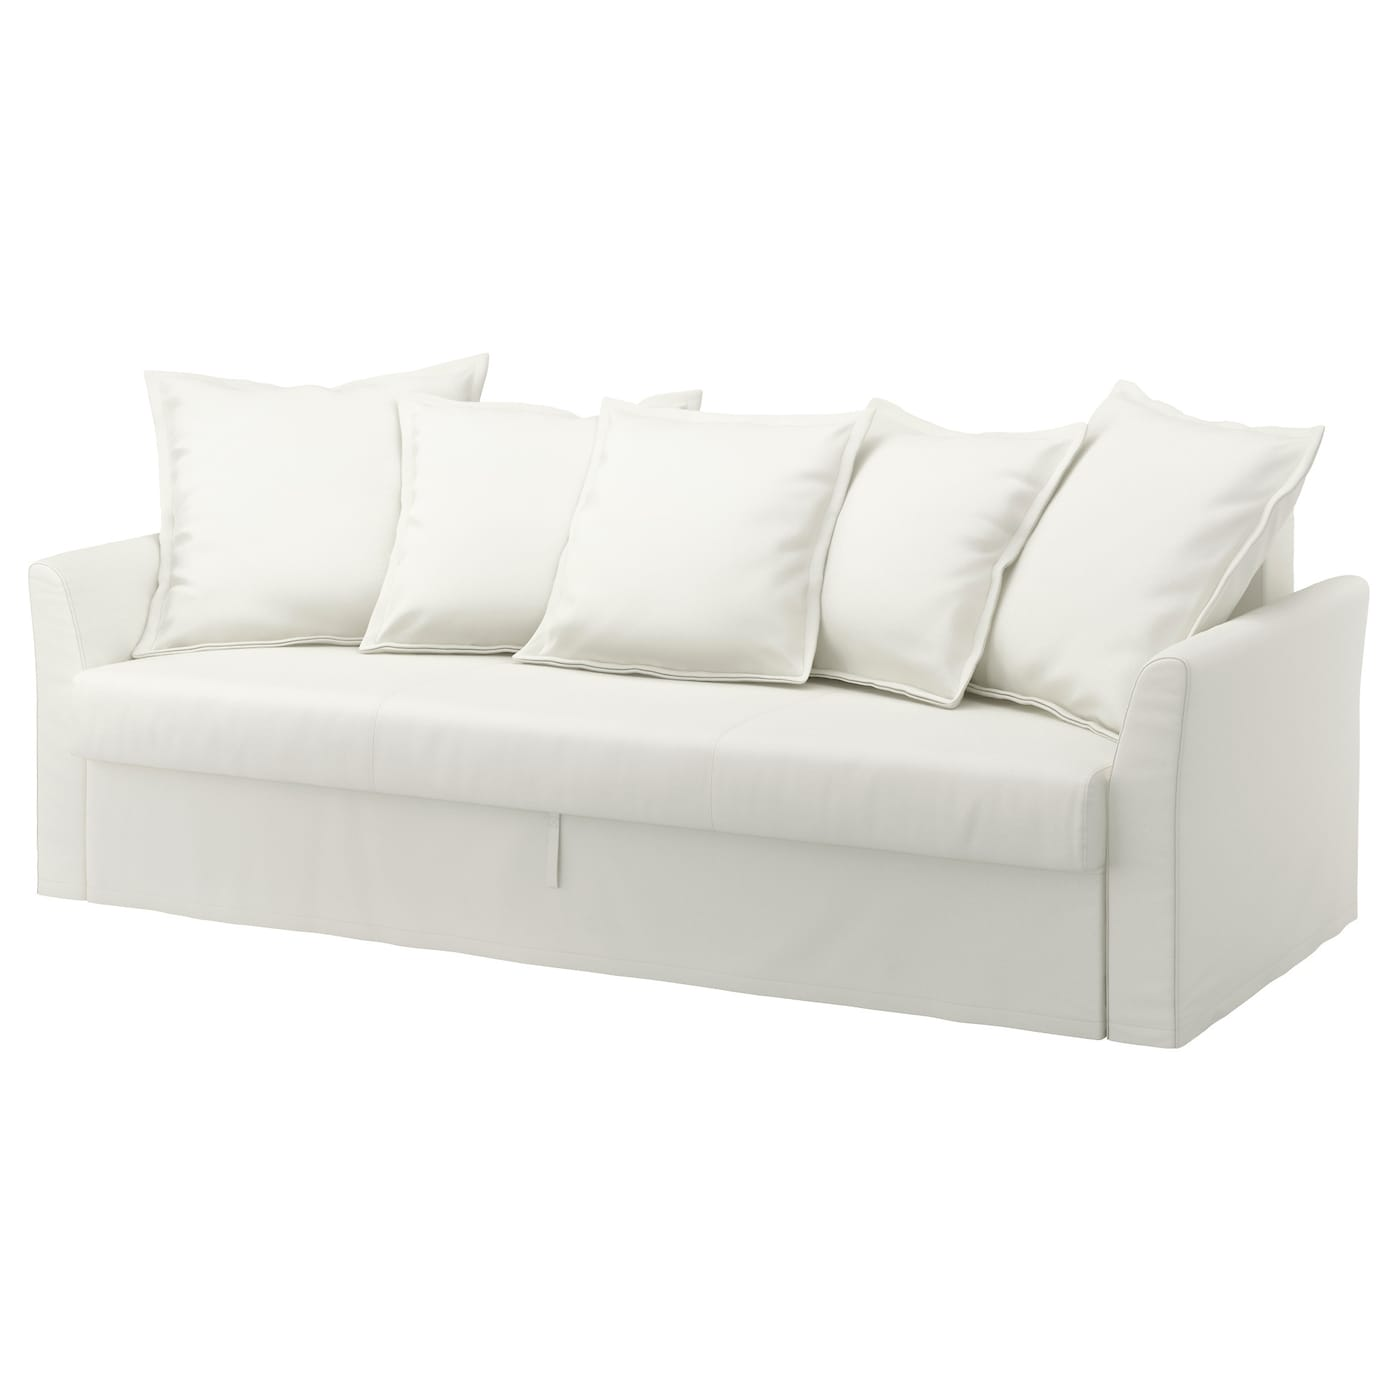 holmsund three seat sofa bed ransta white ikea. Black Bedroom Furniture Sets. Home Design Ideas